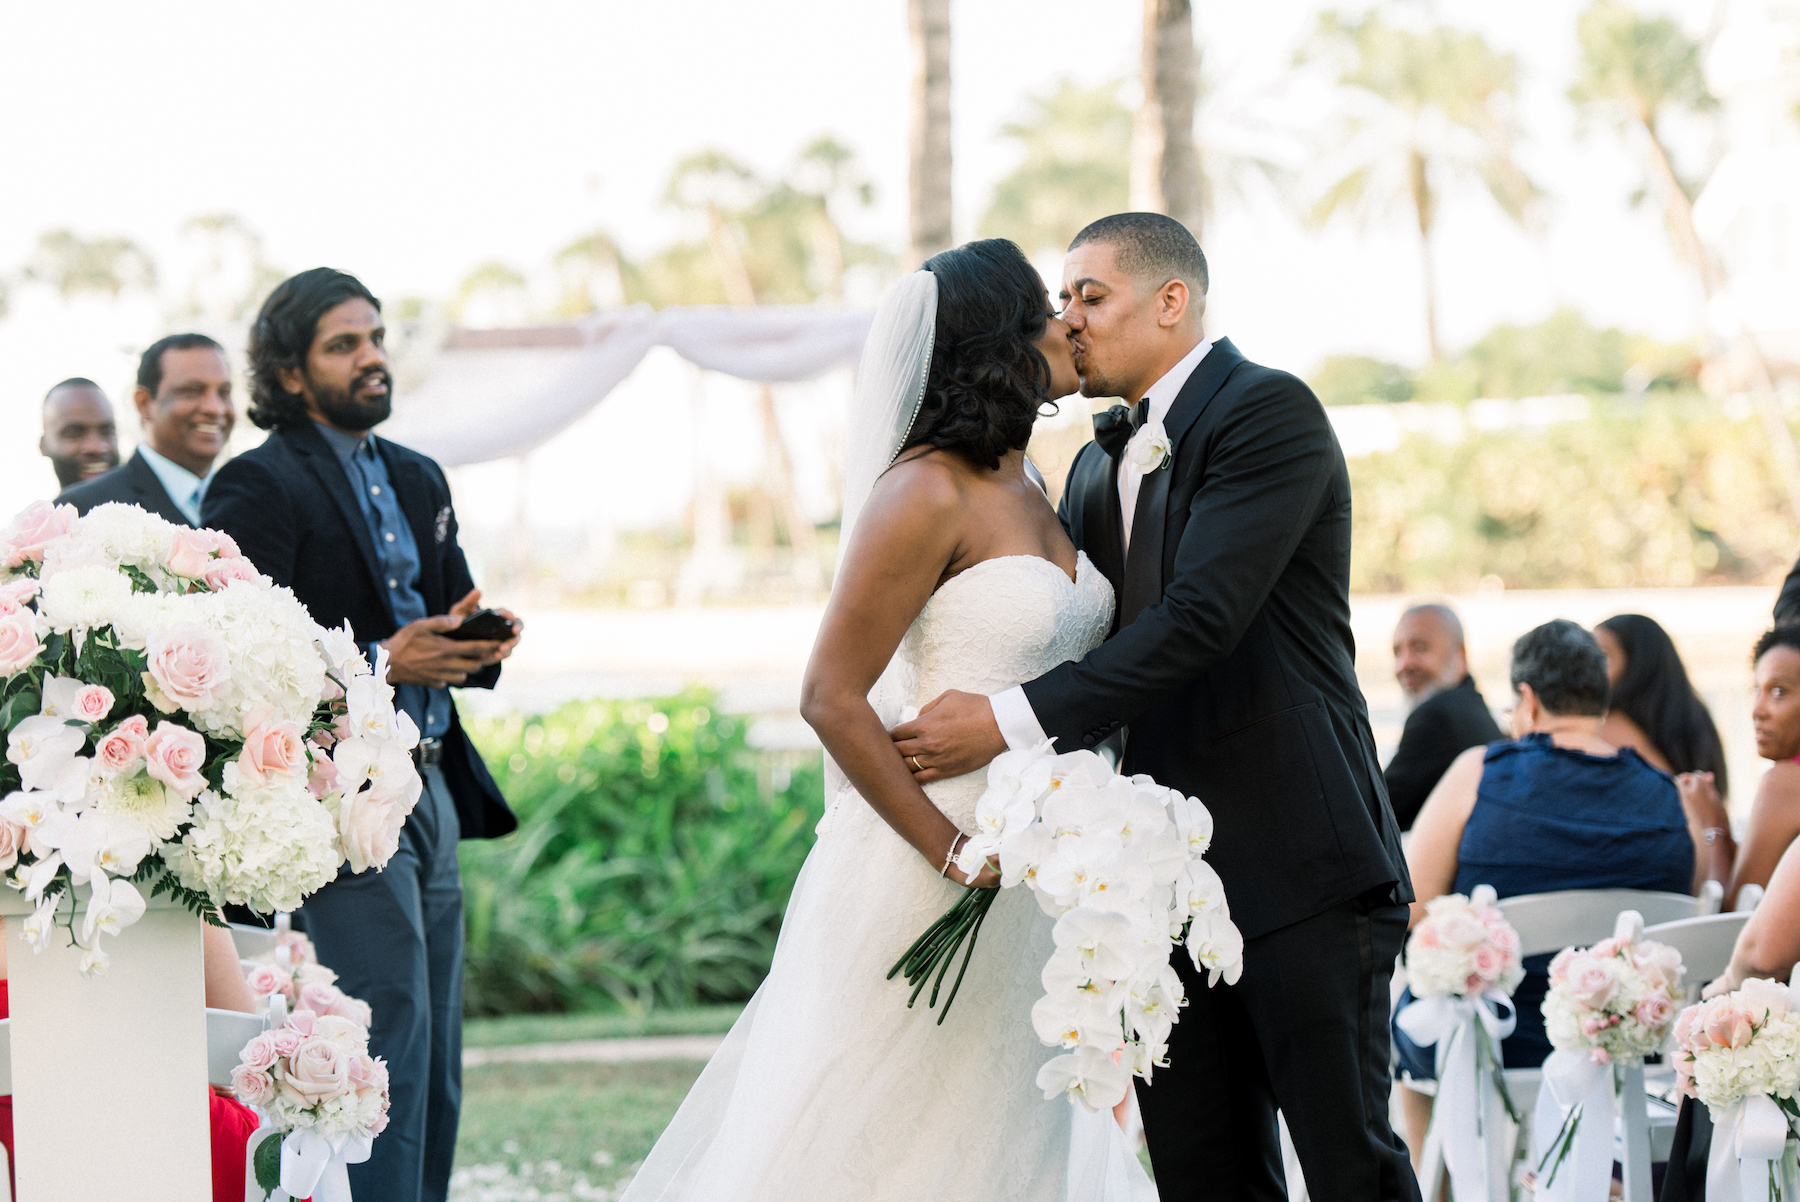 Intimate Classic Bride and Groom Kissing Wedding Ceremony Recessional Portrait | Tampa Wedding Planner Special Moments Event Planning | Garden Waterfront Hotel Wedding Venue Ritz Carlton Sarasota